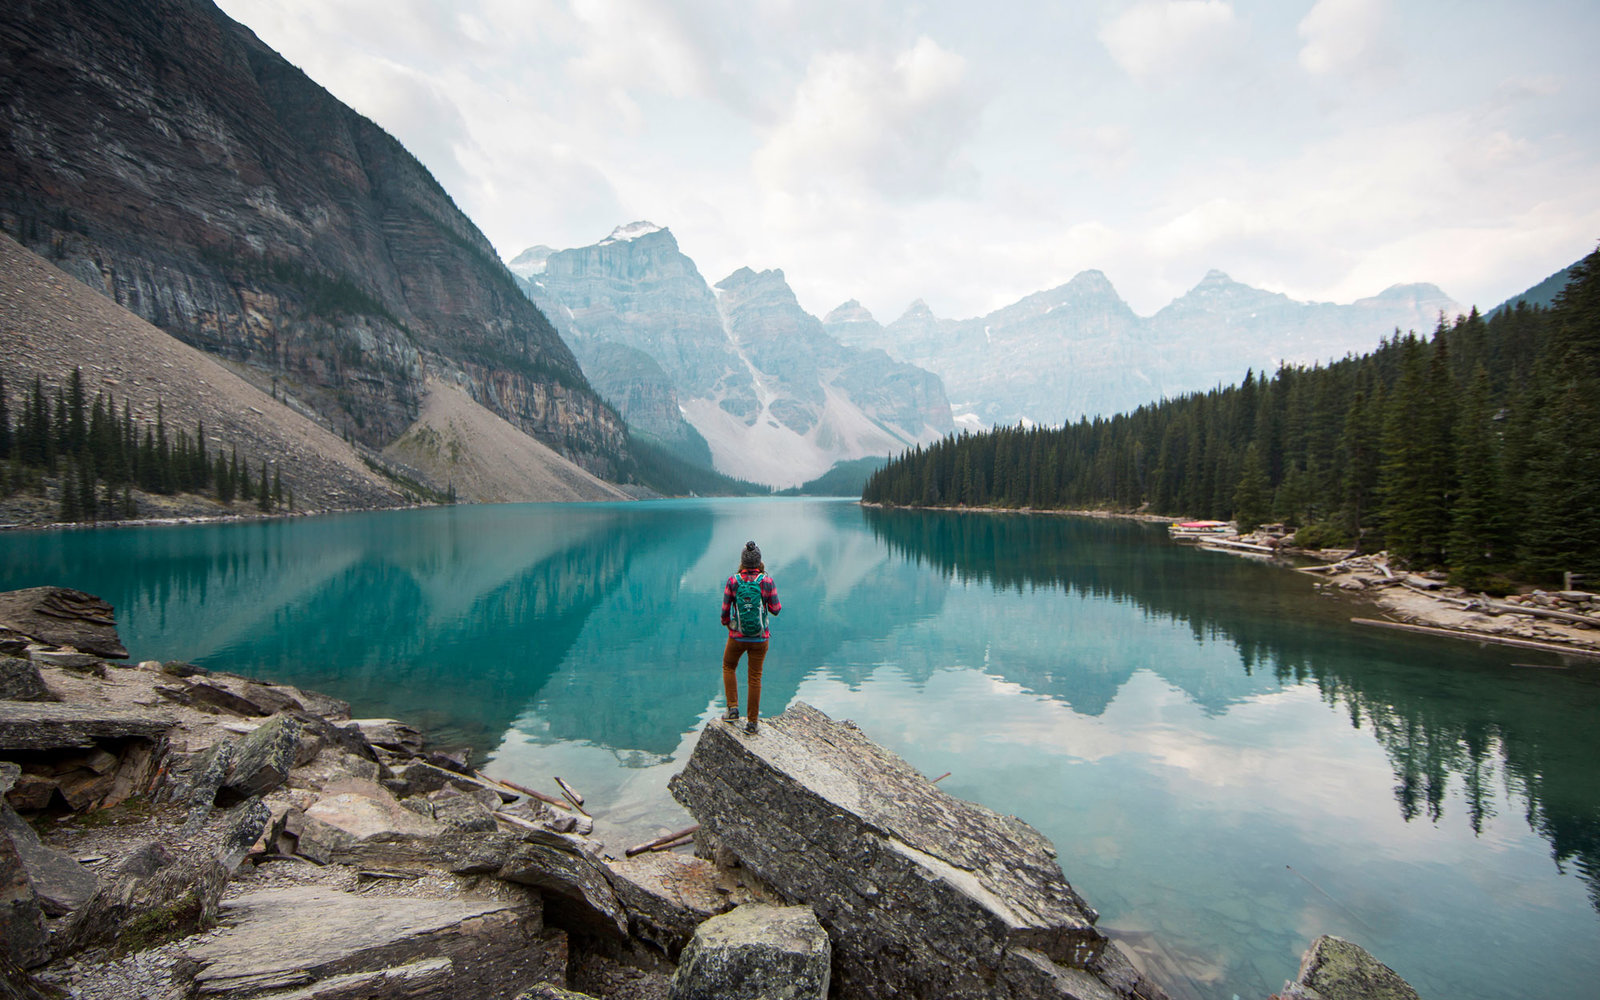 8 Great Tips For Re Entering Normal Life After A Solo